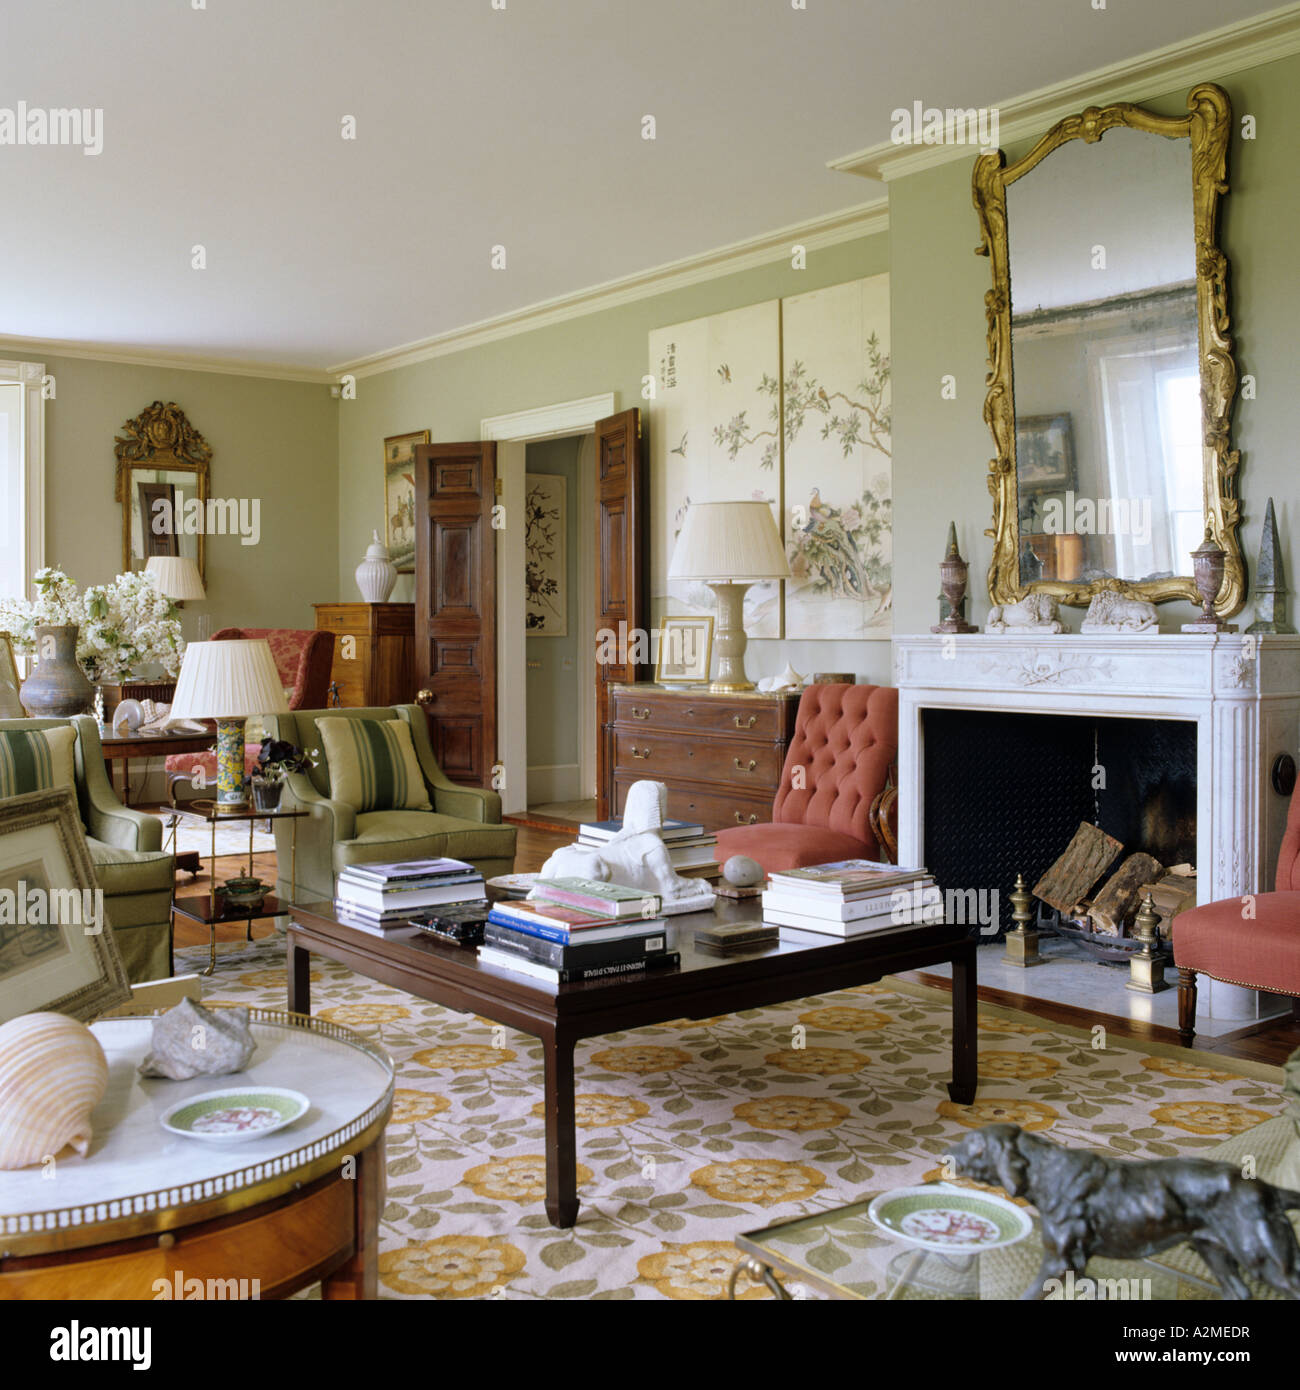 living room of english country house dating from 1820s stock photo royalty free image 10554370. Black Bedroom Furniture Sets. Home Design Ideas